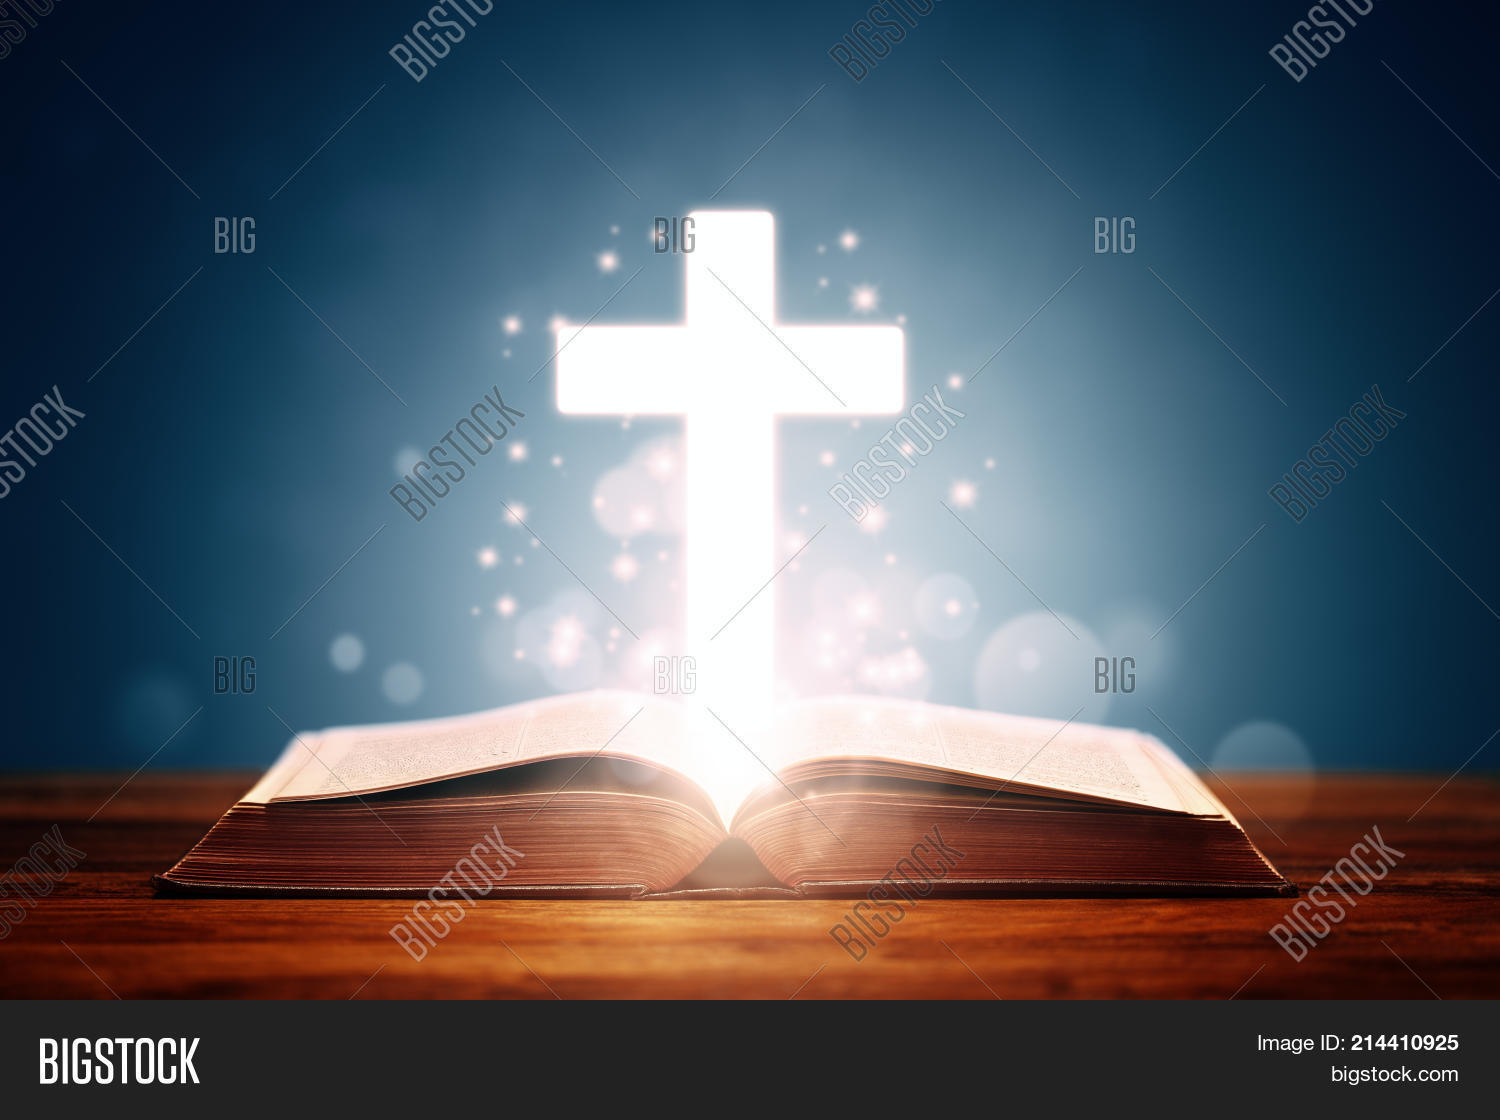 holy bible cross image photo free trial bigstock